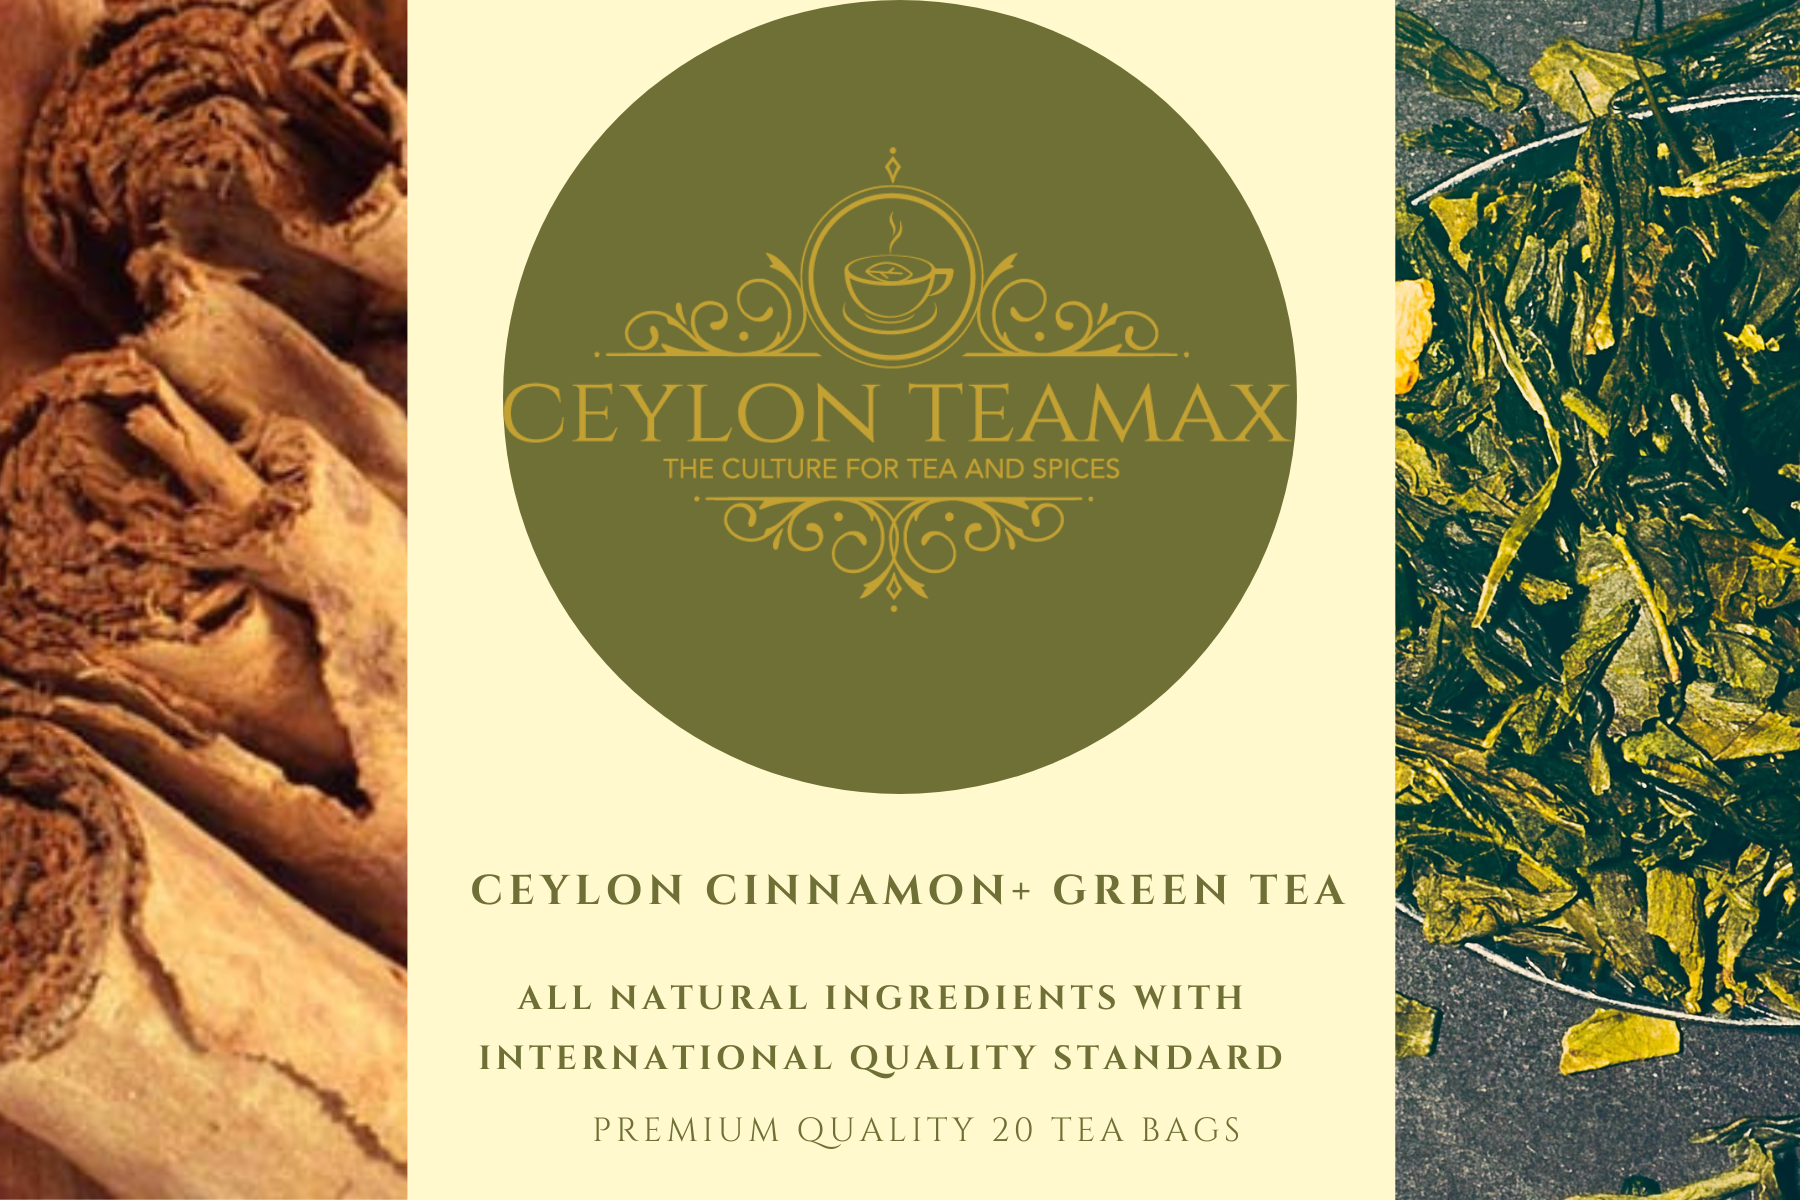 CEYLON CINNAMON WITH CEYLON GREEN TEA -  PREMIUM QUALITY STAPLE LESS TEA BAGS - Ceylon Teamax